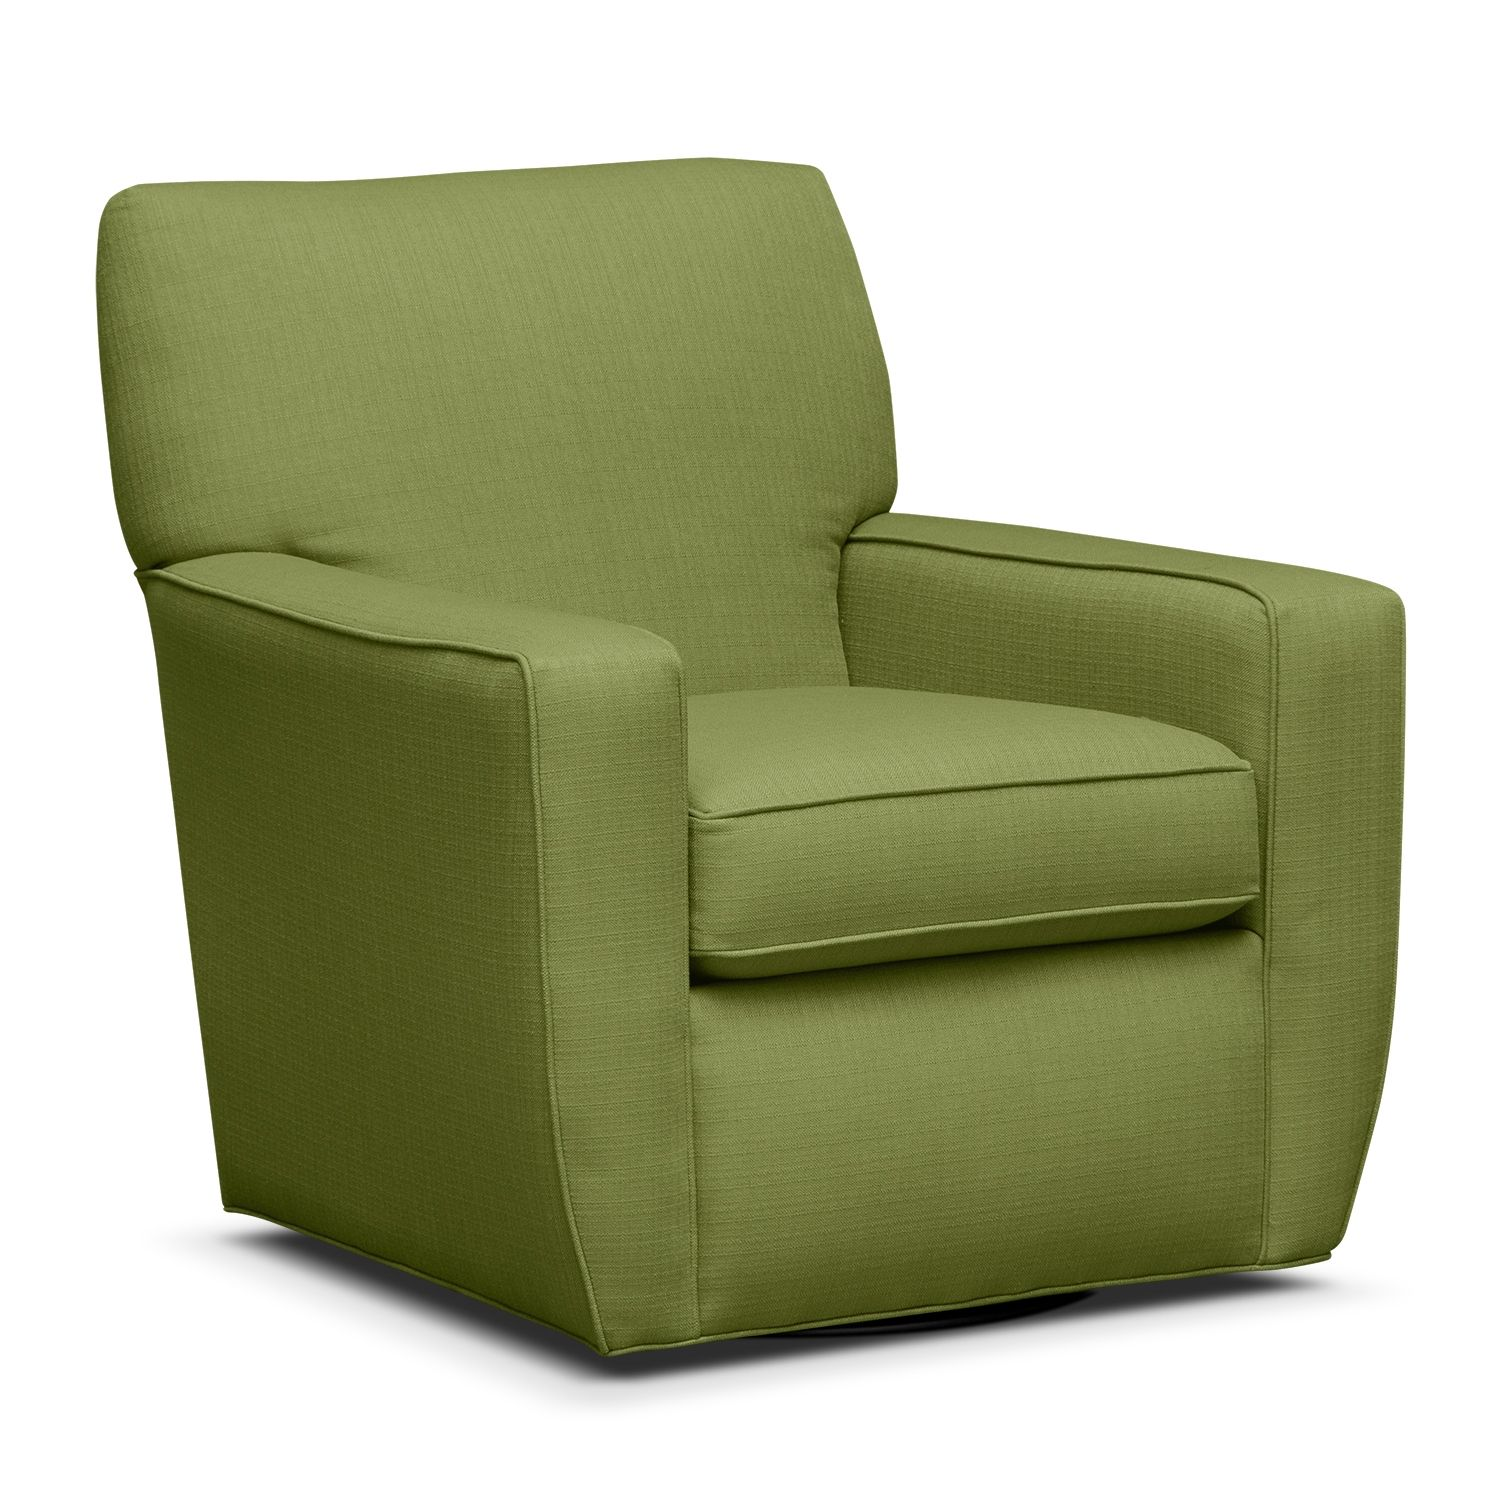 Newport ii upholstery swivel chair value city furniture